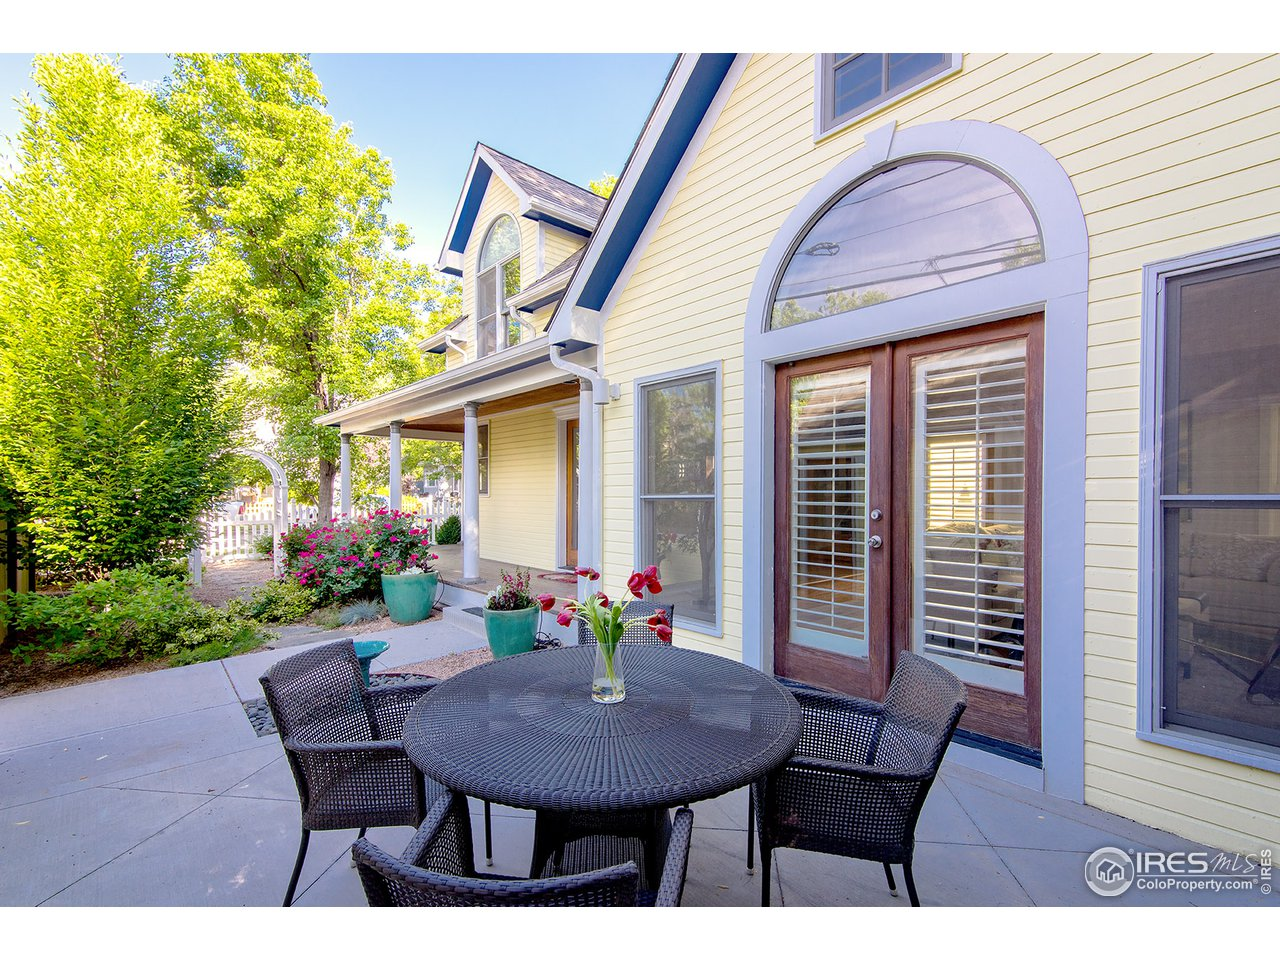 Great connection to the patio thru french doors!